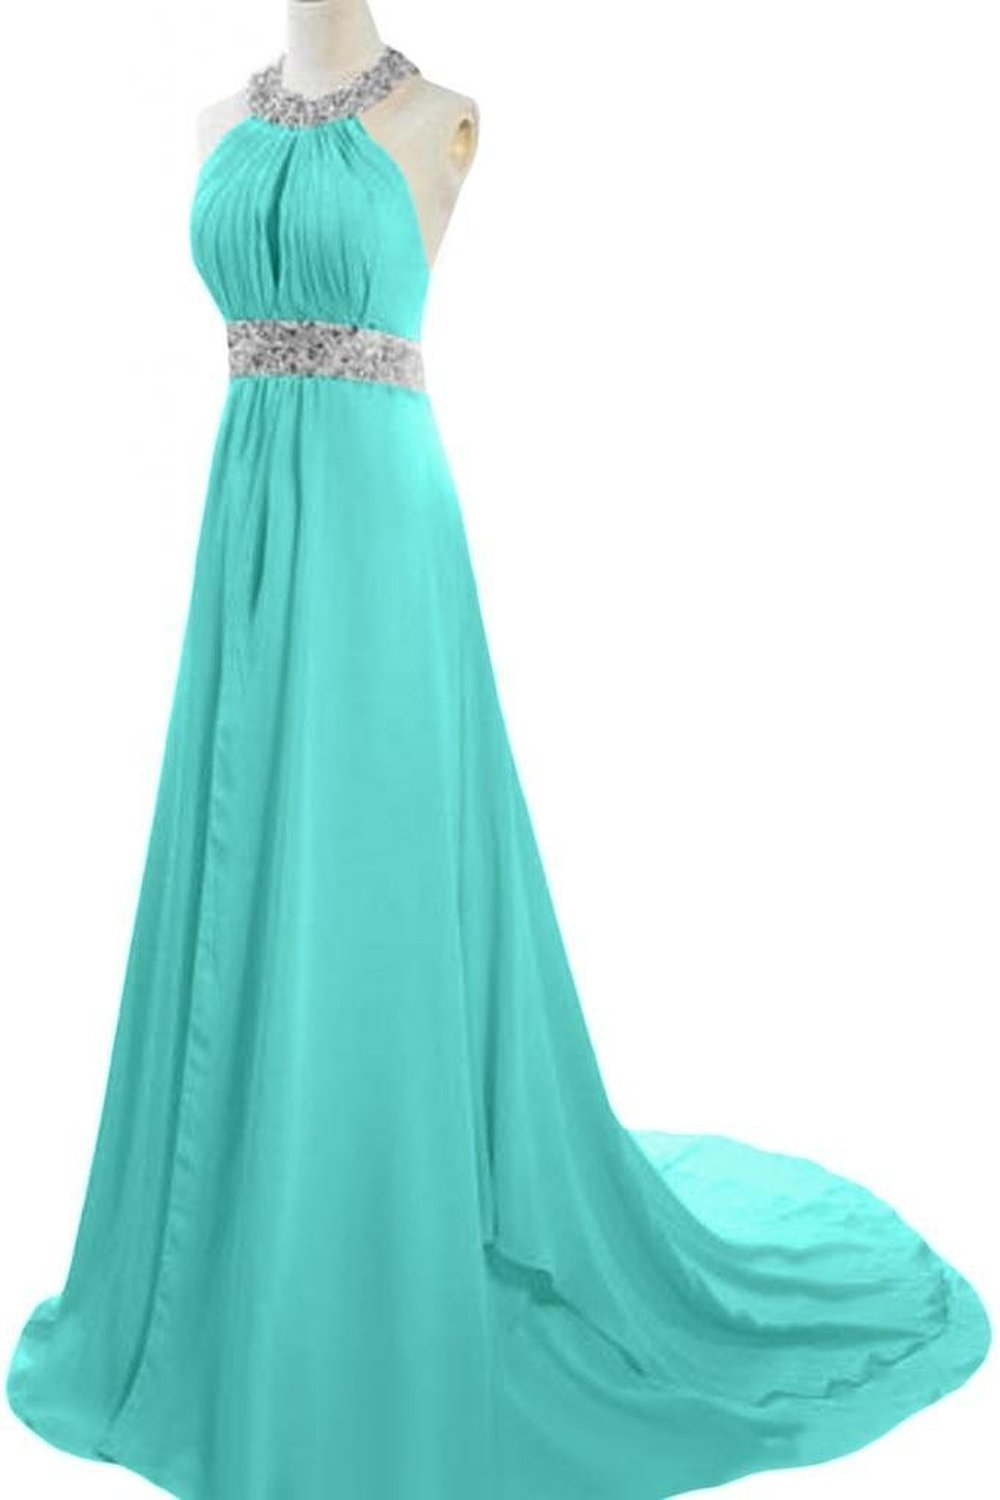 Enjoybuys Exquisite Halter Neck Evening Prom Dresses With